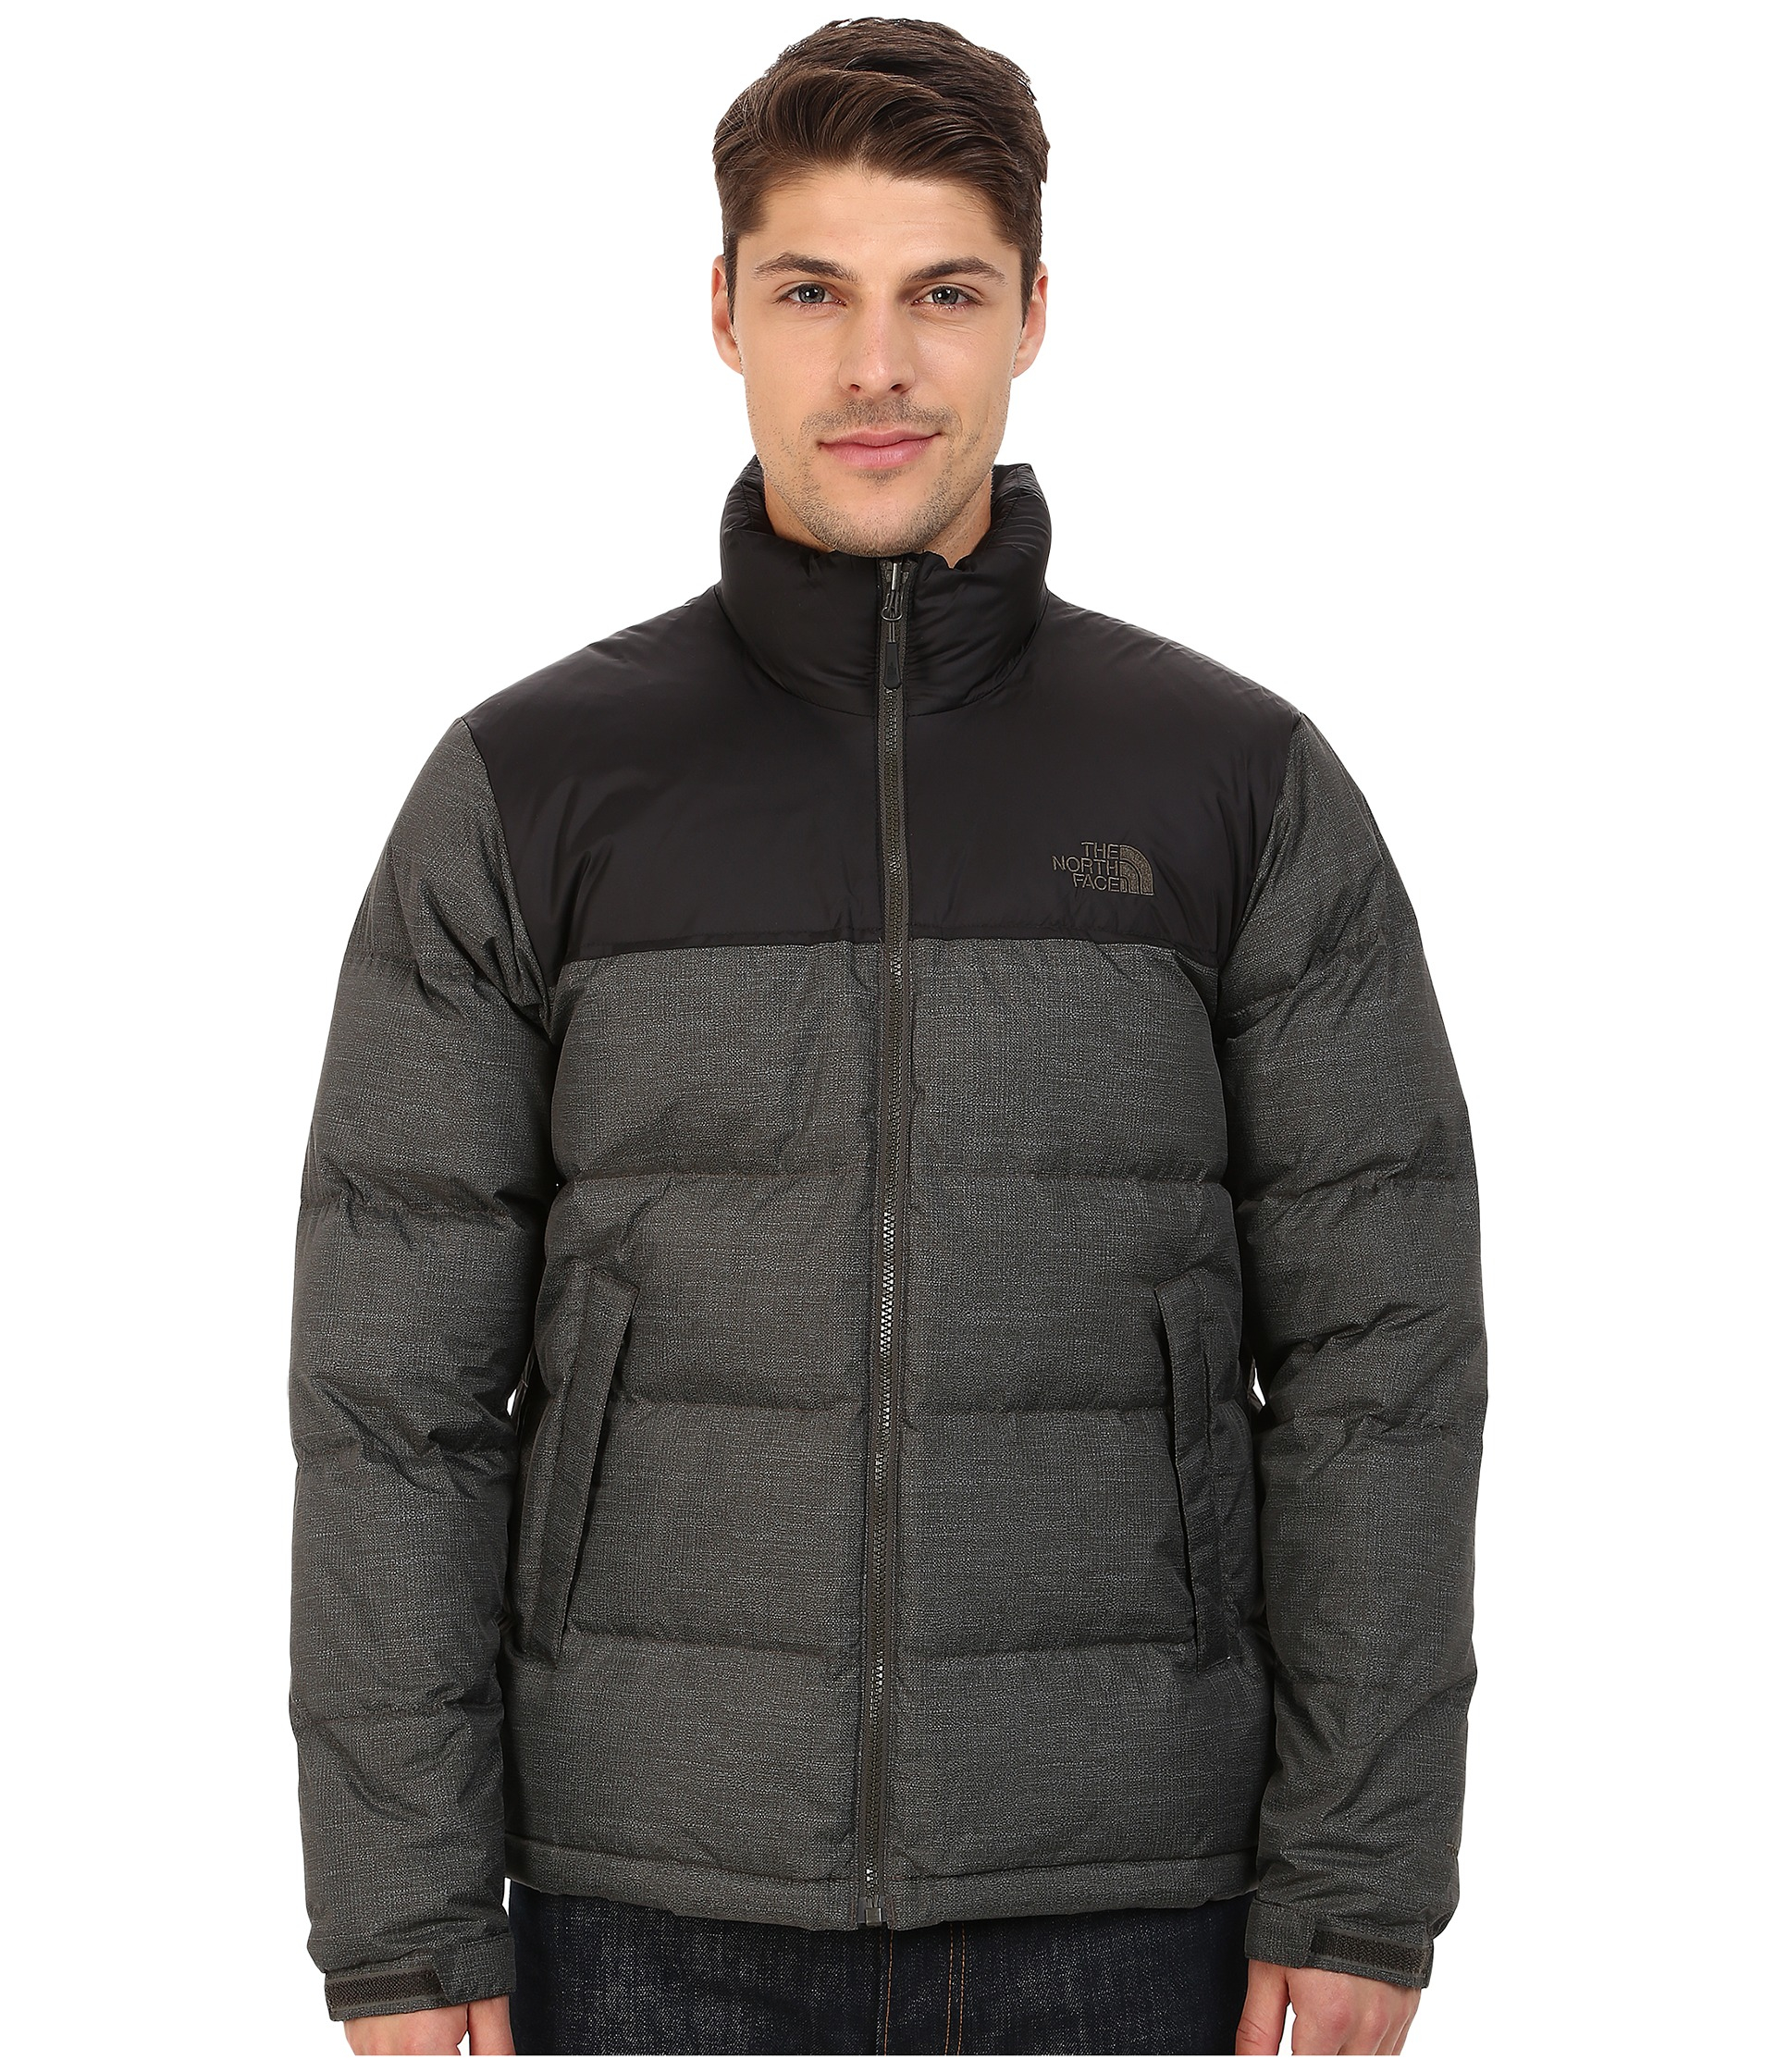 the north face nuptse jacket in black for men lyst. Black Bedroom Furniture Sets. Home Design Ideas